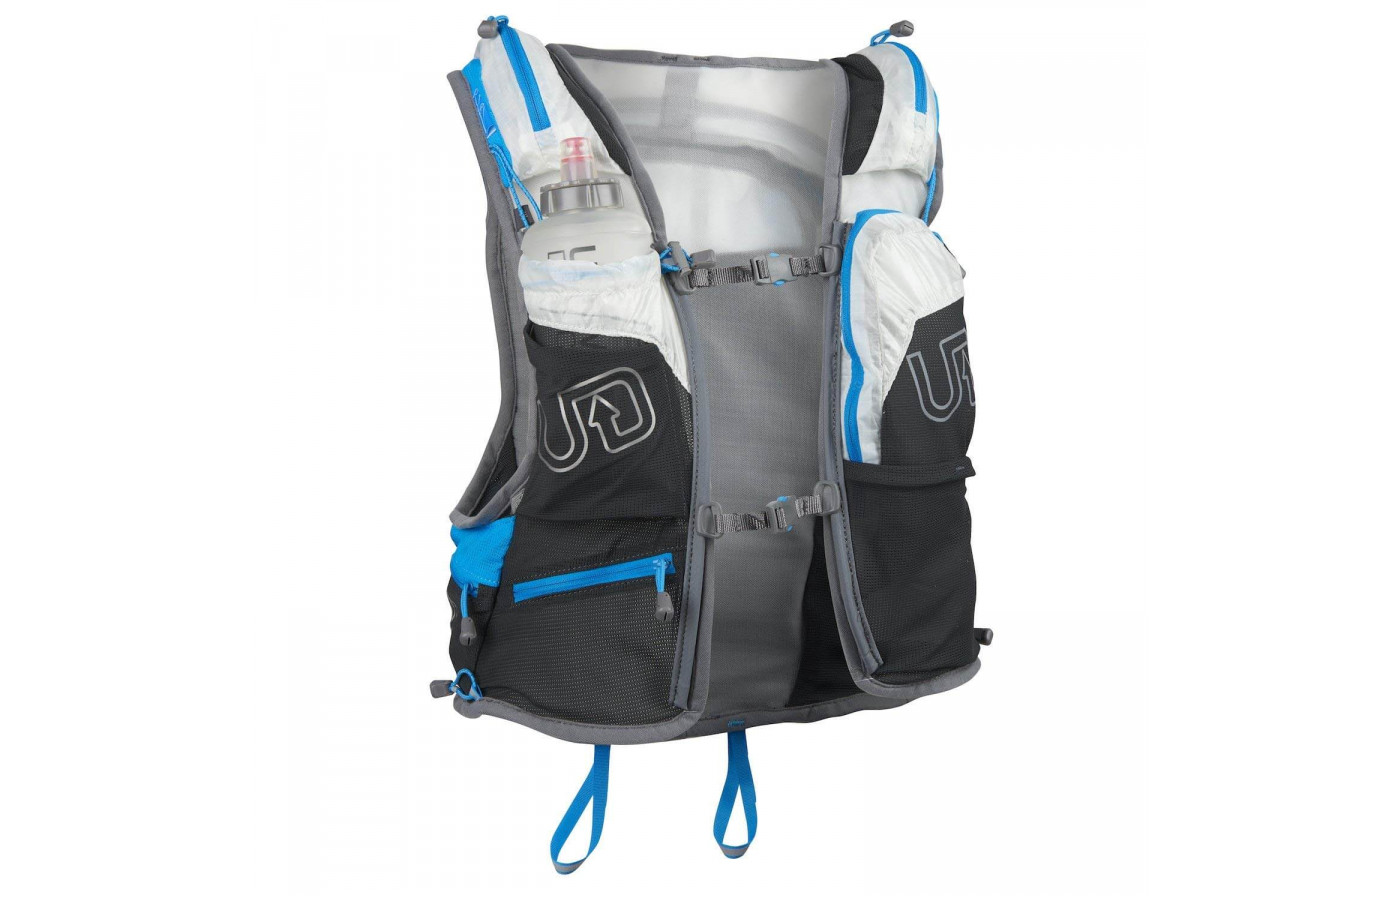 The Ultimate Direction PB Adventure Vest 3.0 weighs about 14.4 ounces